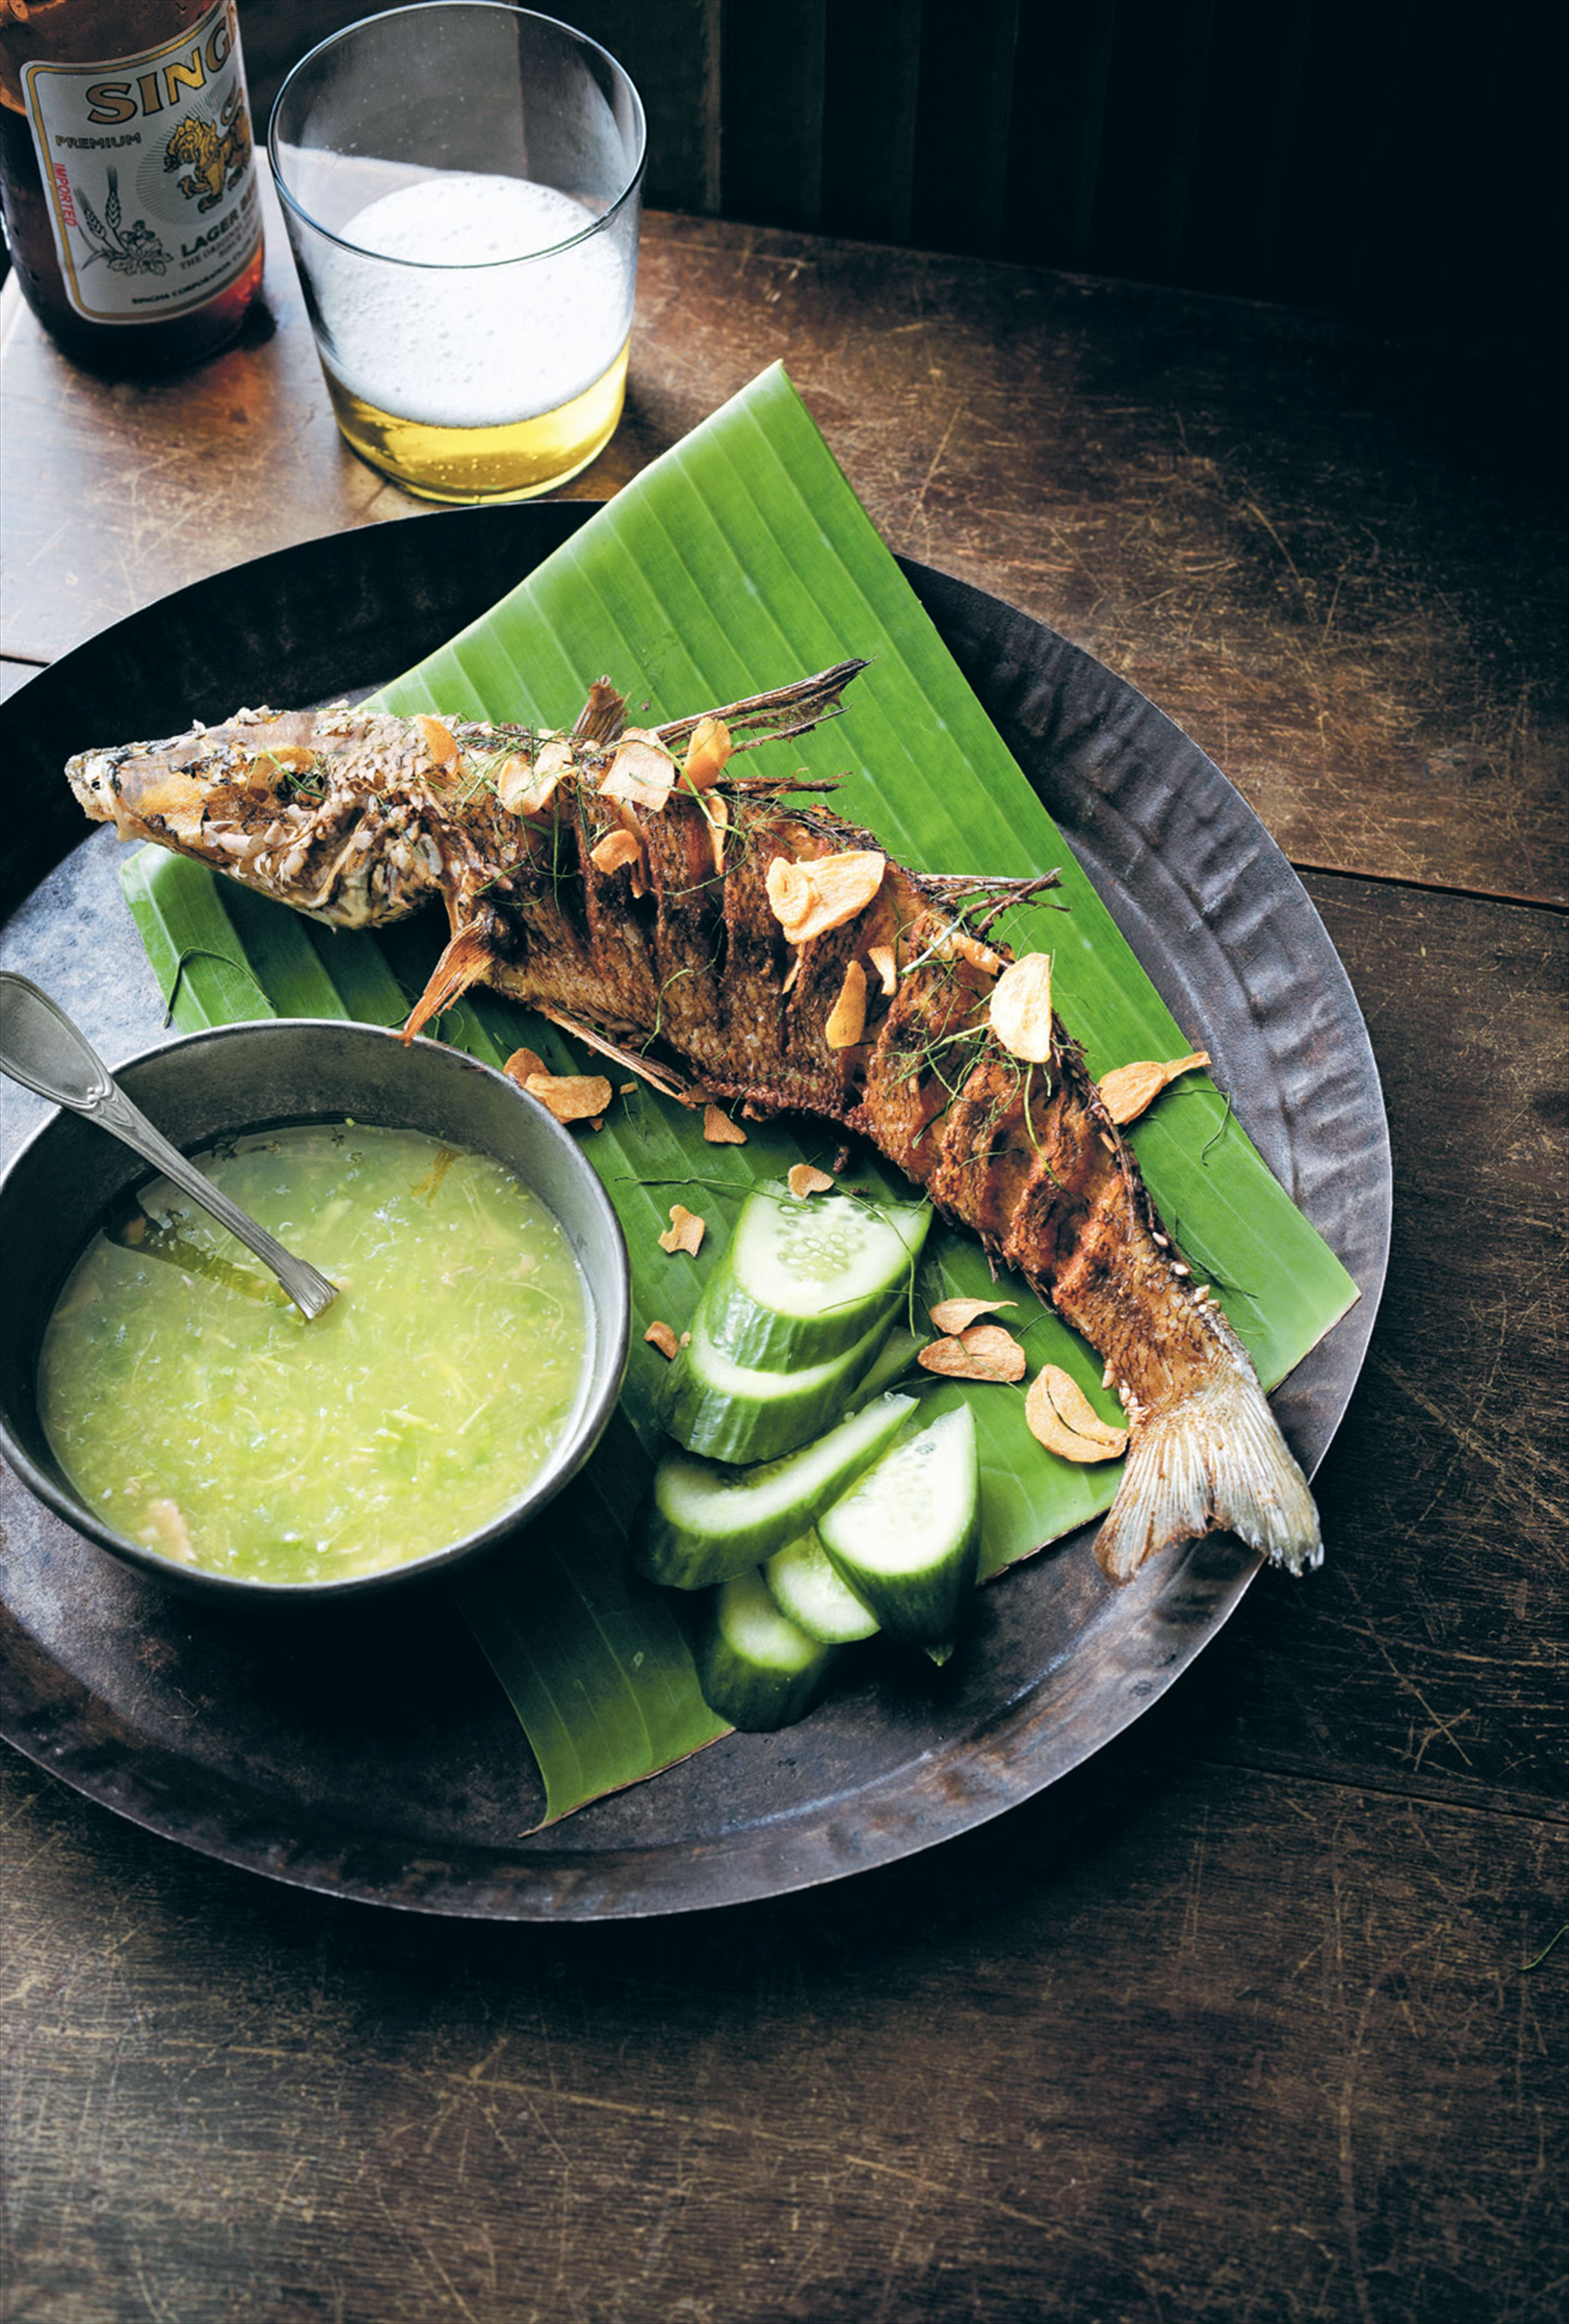 Crisp-fried whole whiting with green chilli nahm jim